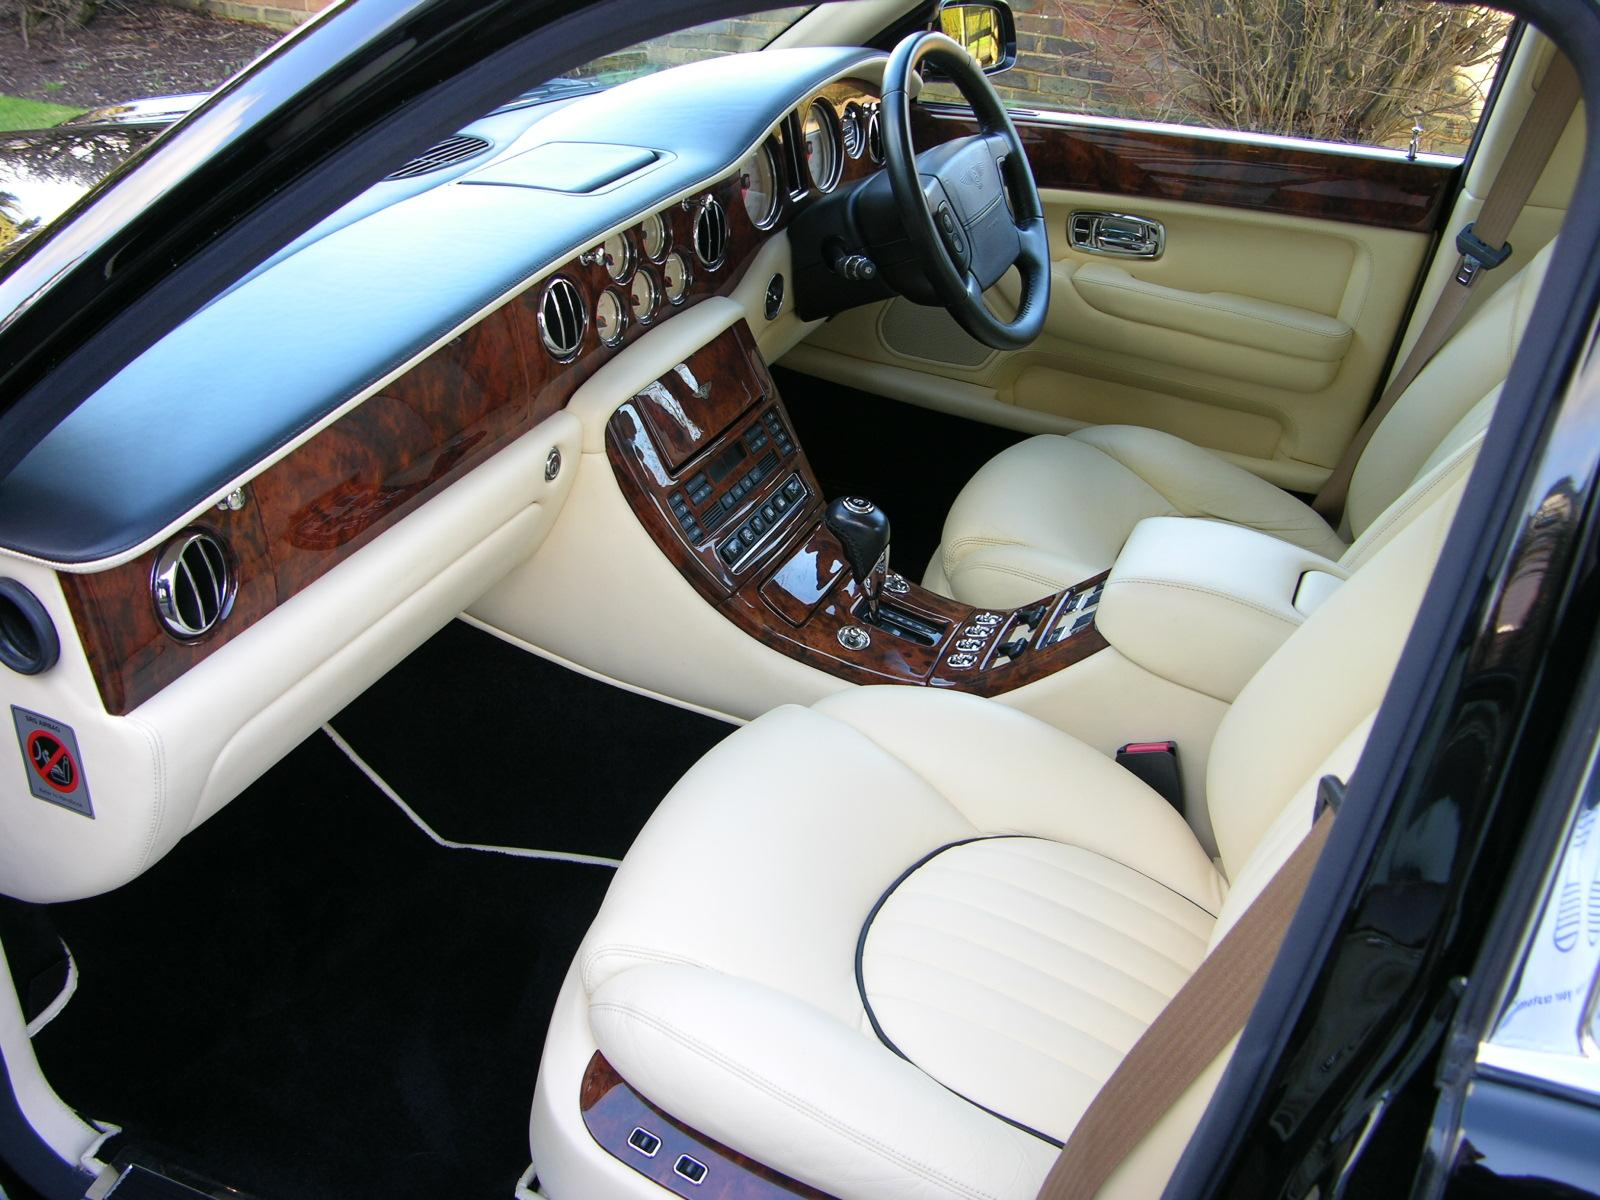 File2001 bentley arnage red label flickr the car spy 13g file2001 bentley arnage red label flickr the car spy 13 vanachro Choice Image